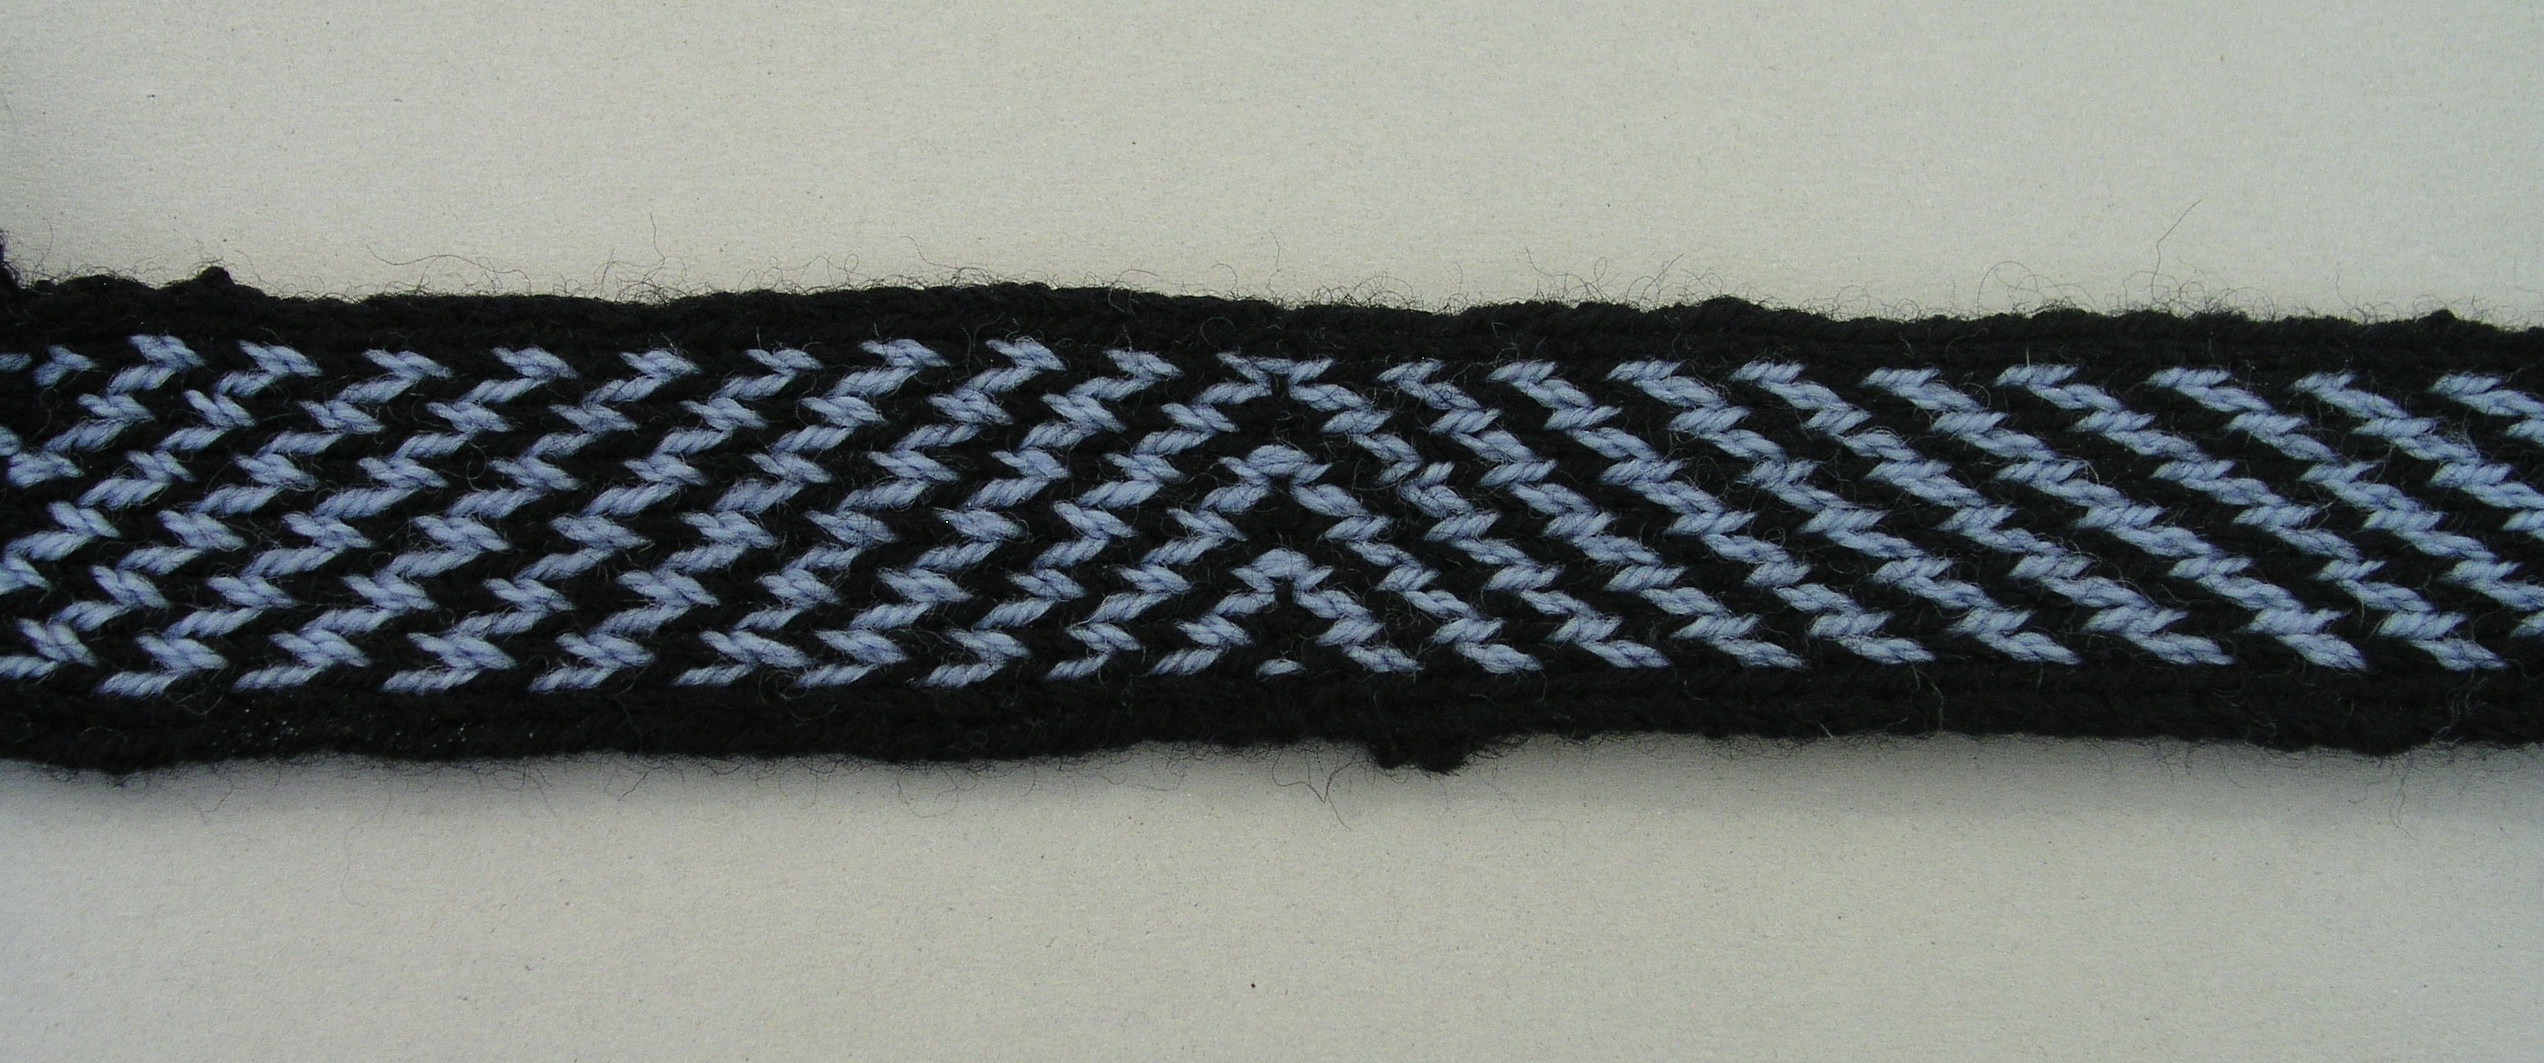 Tablet weaving reconstruction of a geometric pattern. Photo S. Spantidaki.